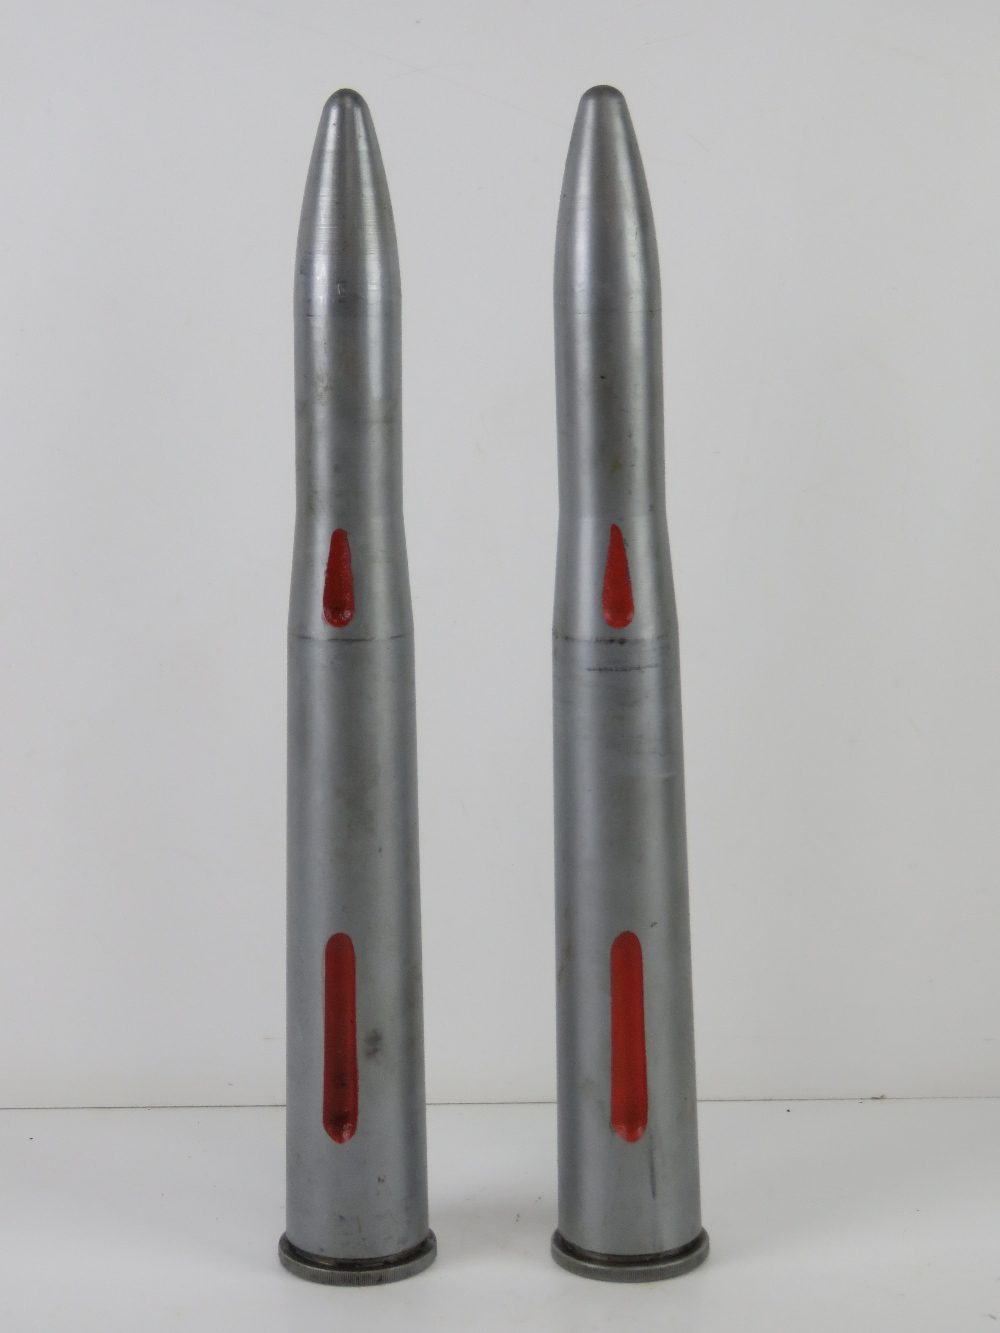 Two 40MM Bofors training round, No.2 drill, dated 1954.